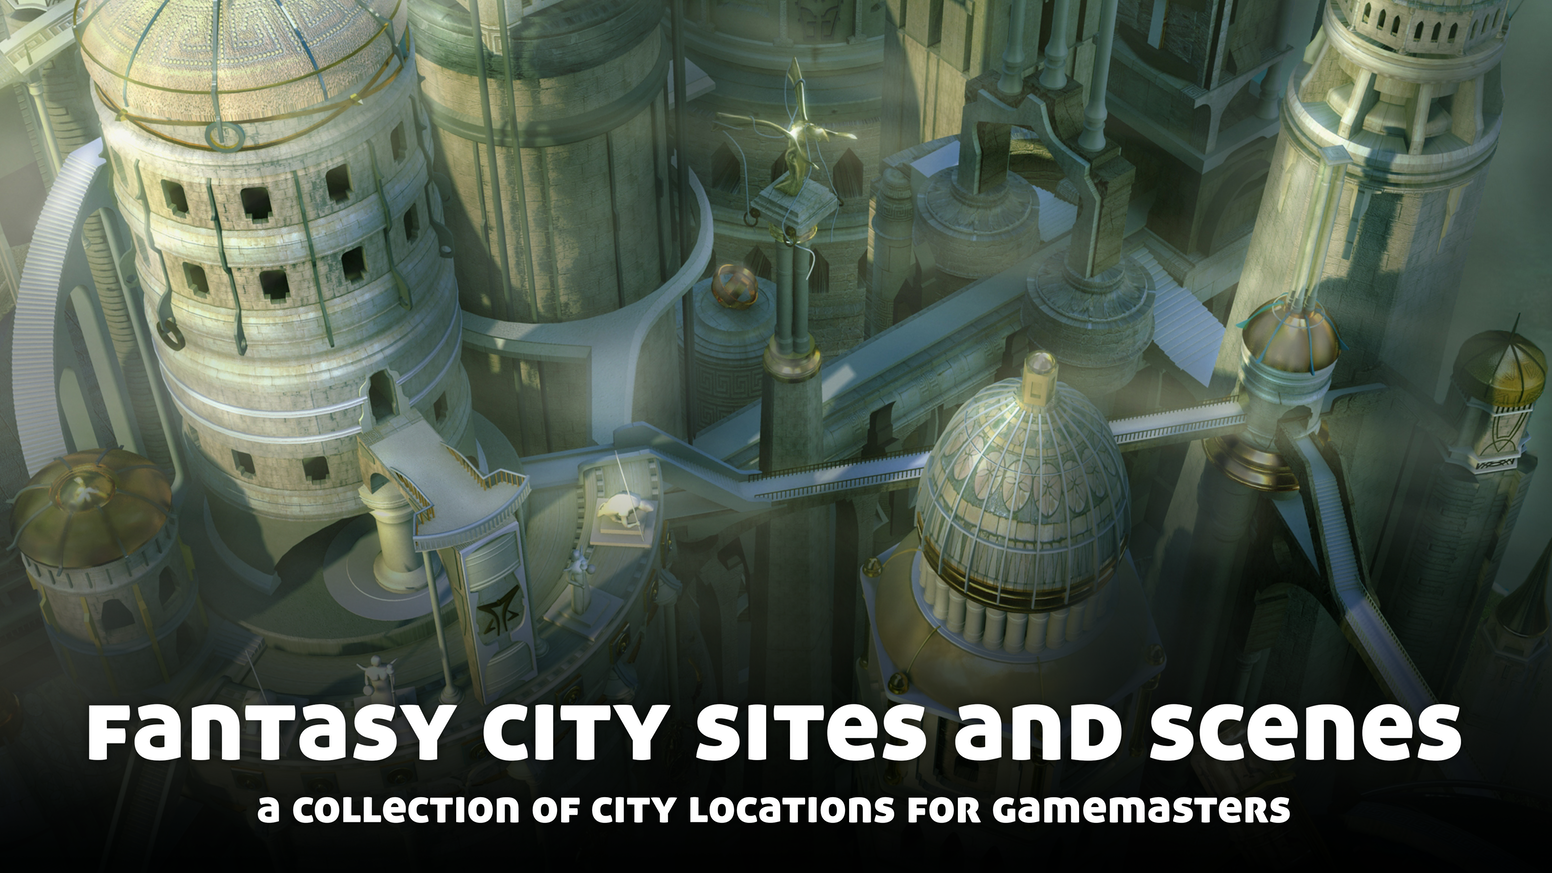 A guide for gamemasters. Includes sixteen different fantasy city locations, each ready to drop into your campaign.